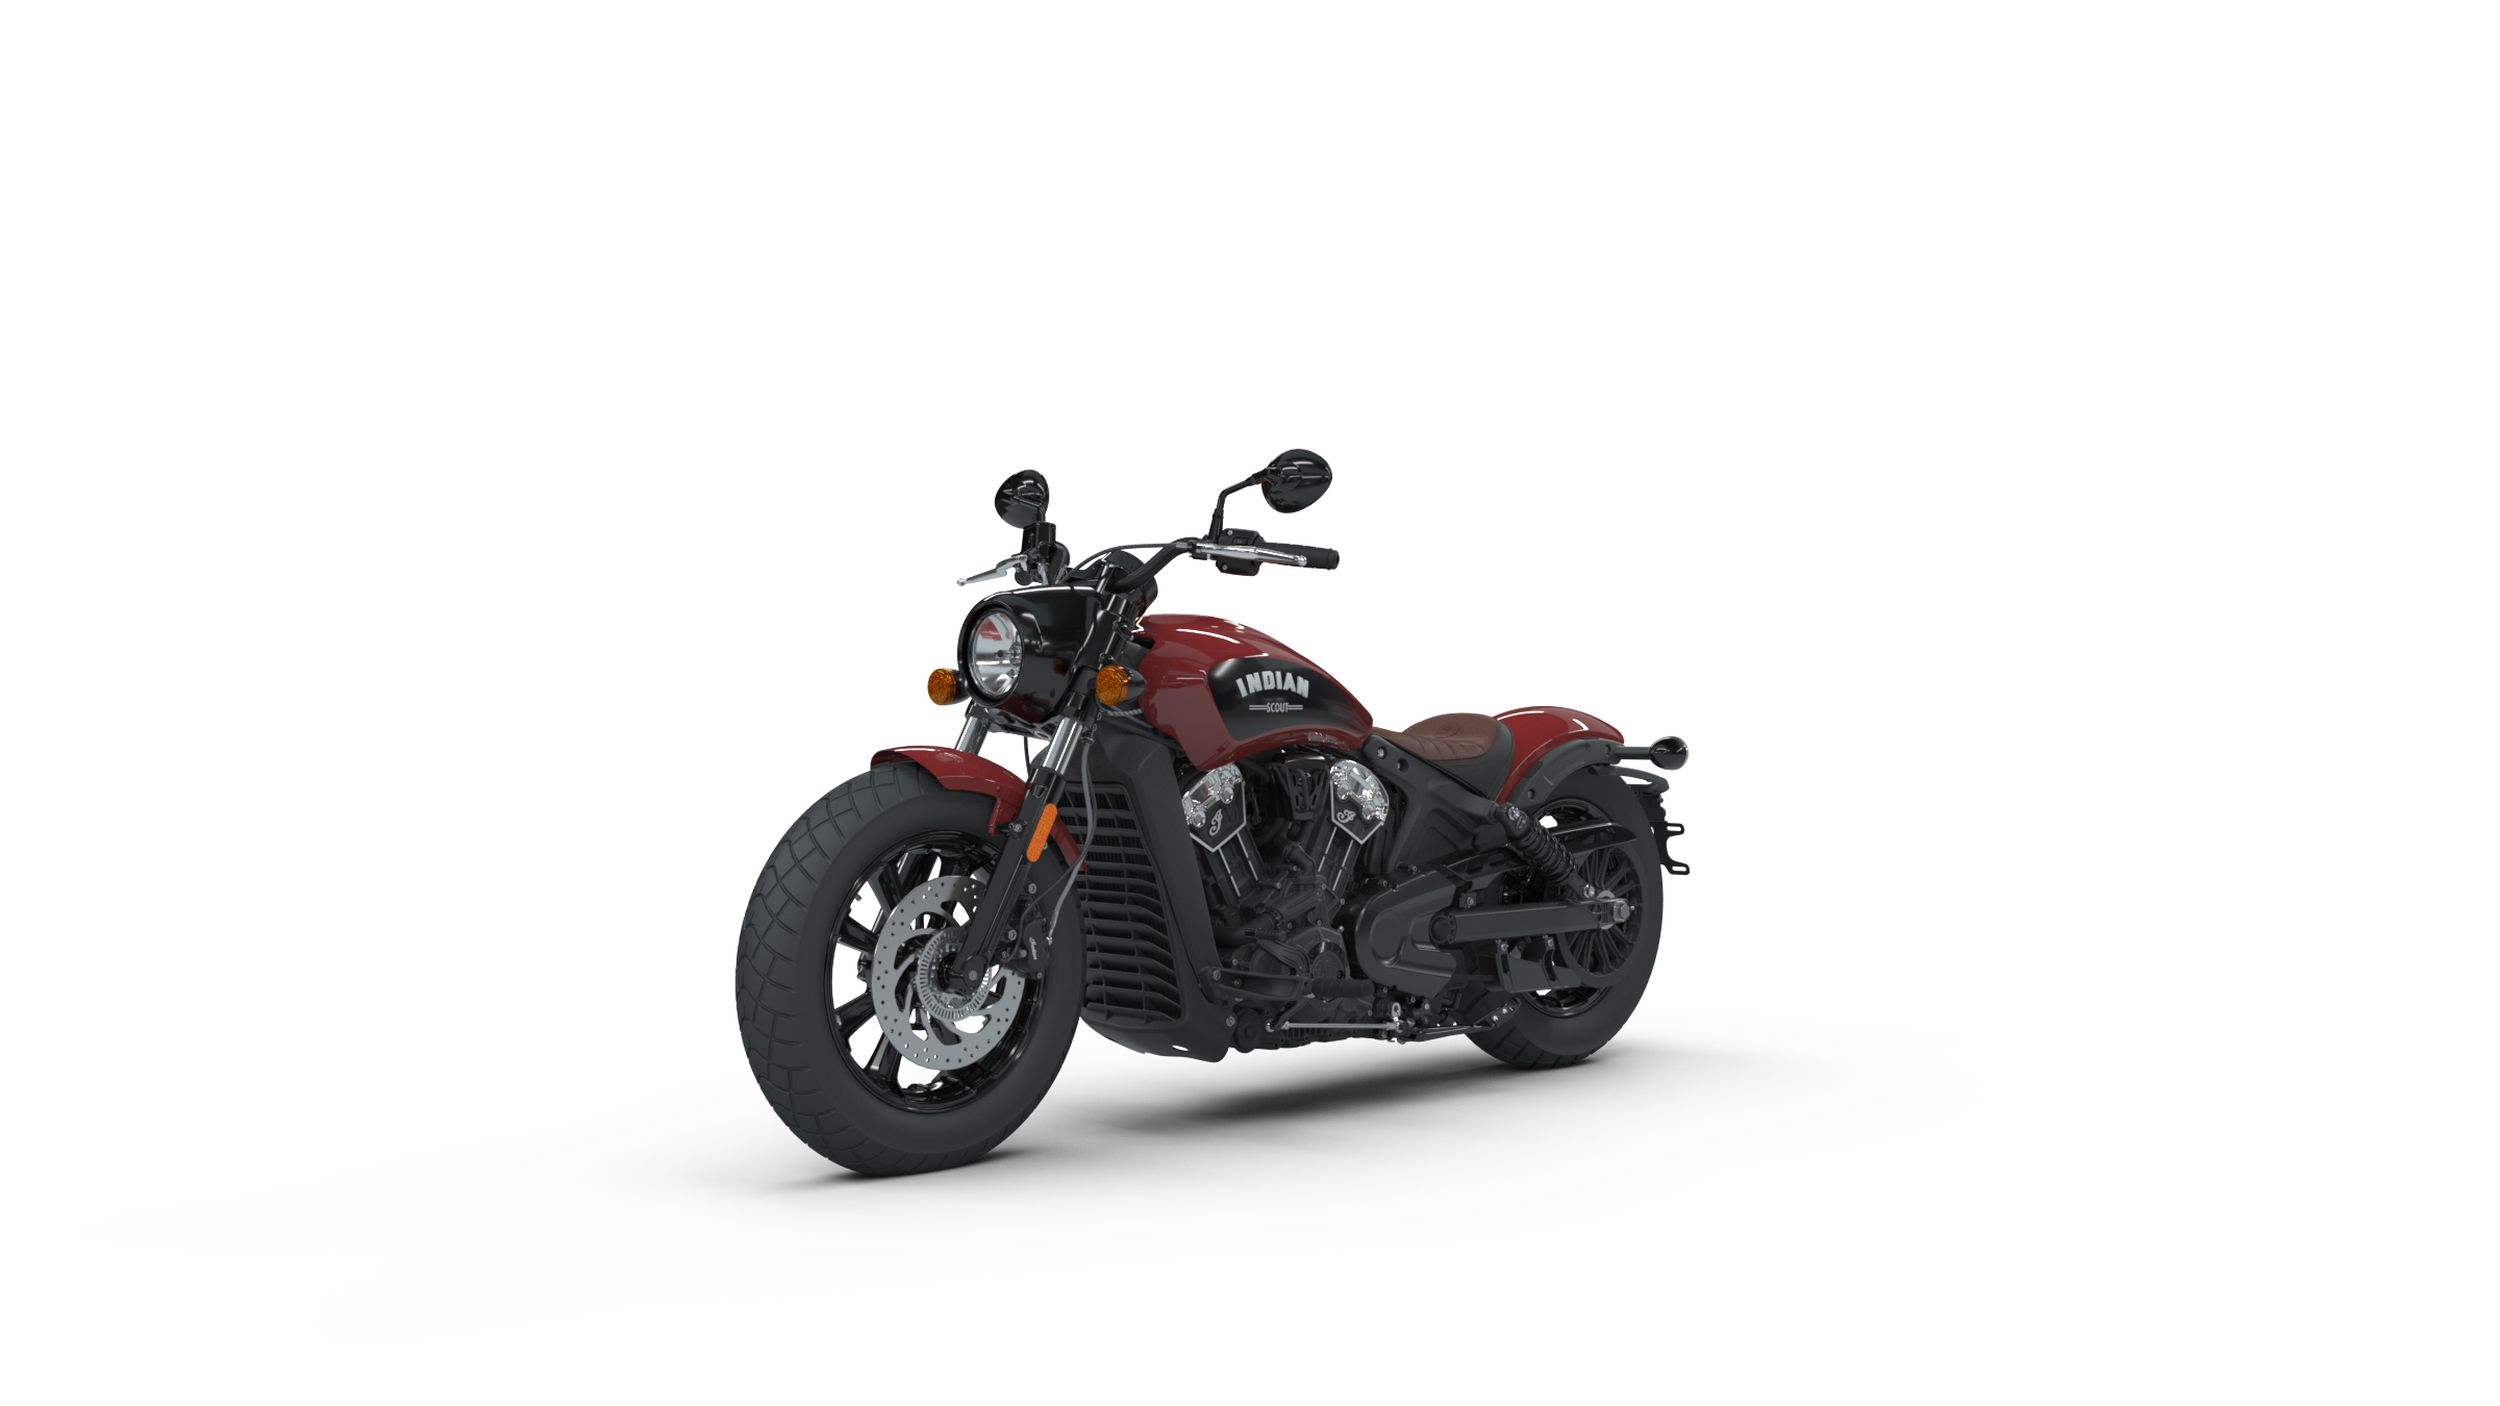 indian scout bobber alle technischen daten zum modell. Black Bedroom Furniture Sets. Home Design Ideas